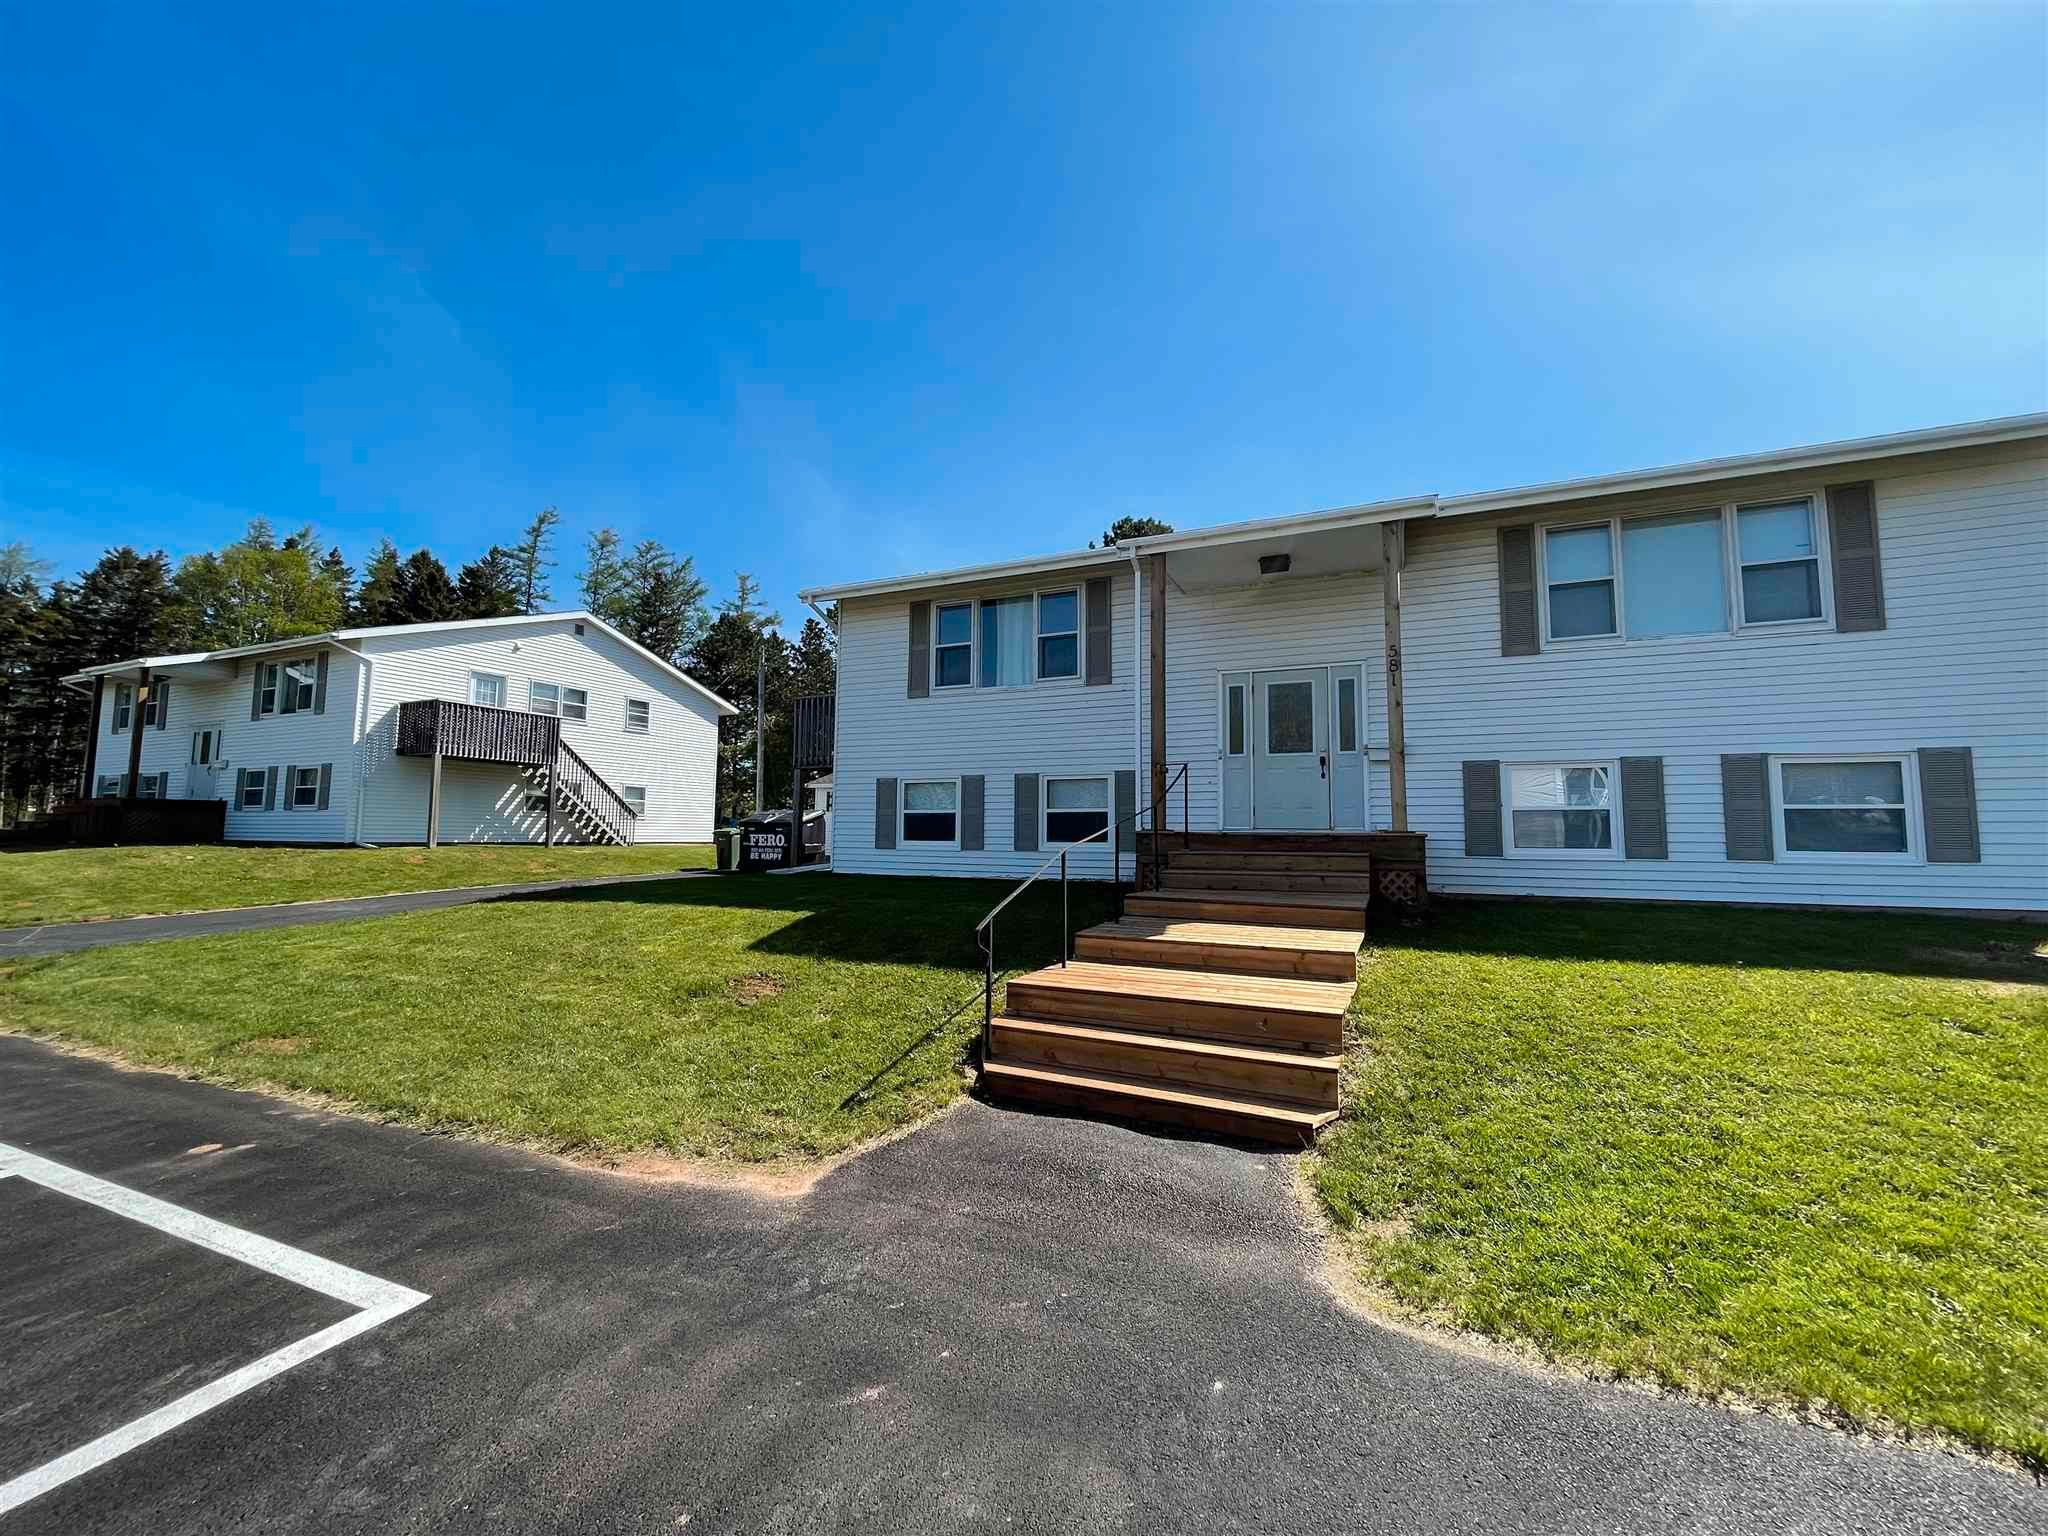 Main Photo: 579 College Road in Bible Hill: 104-Truro/Bible Hill/Brookfield Multi-Family for sale (Northern Region)  : MLS®# 202114762